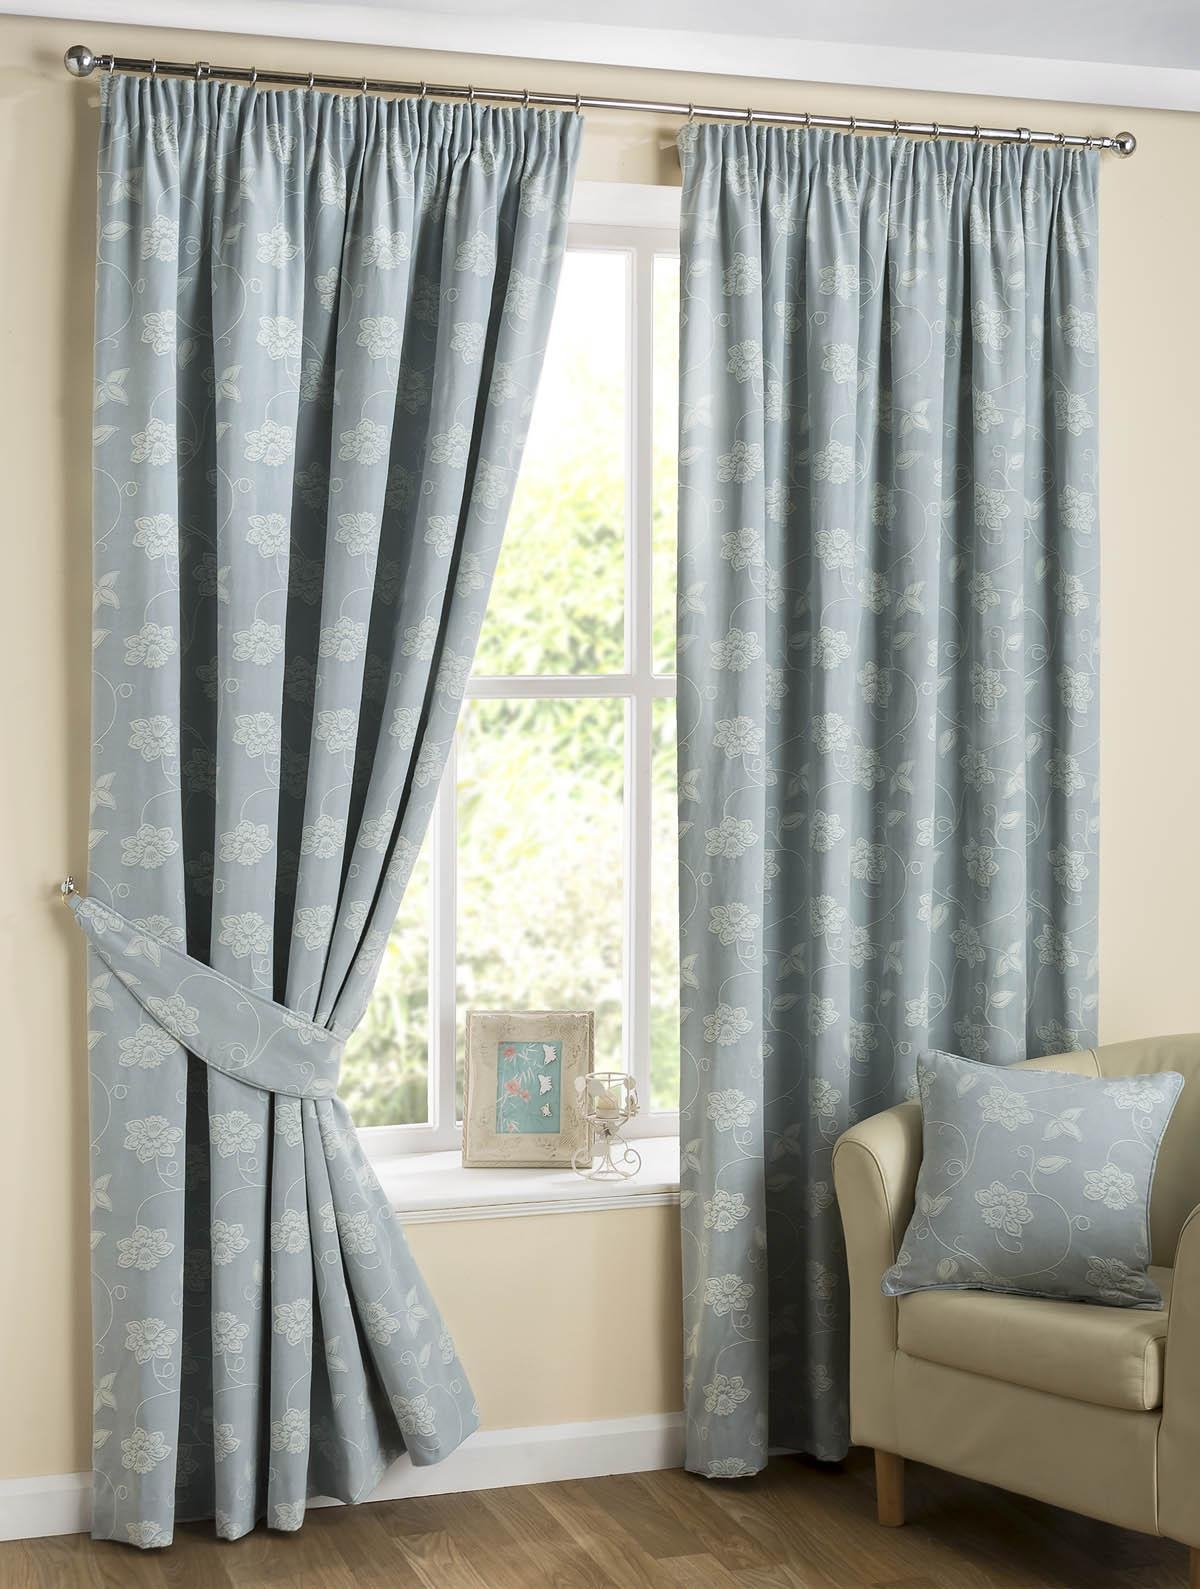 Duck Egg Blue Blackout Curtains With Regard To Duck Egg Blue Blackout Curtains (Image 6 of 15)